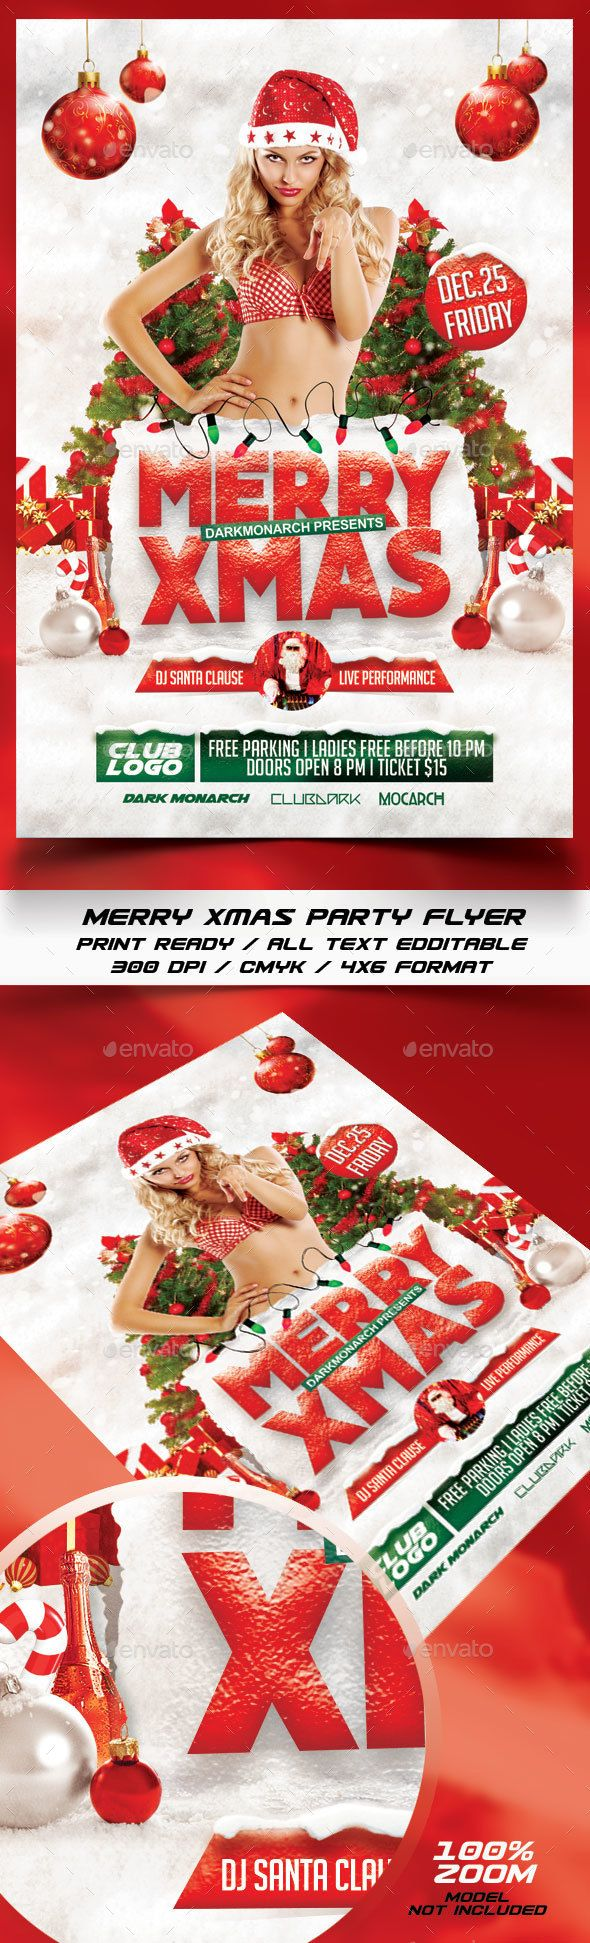 The 169 best christmas images on pinterest design web merry xmas party flyer template psd design xmas download http voltagebd Choice Image